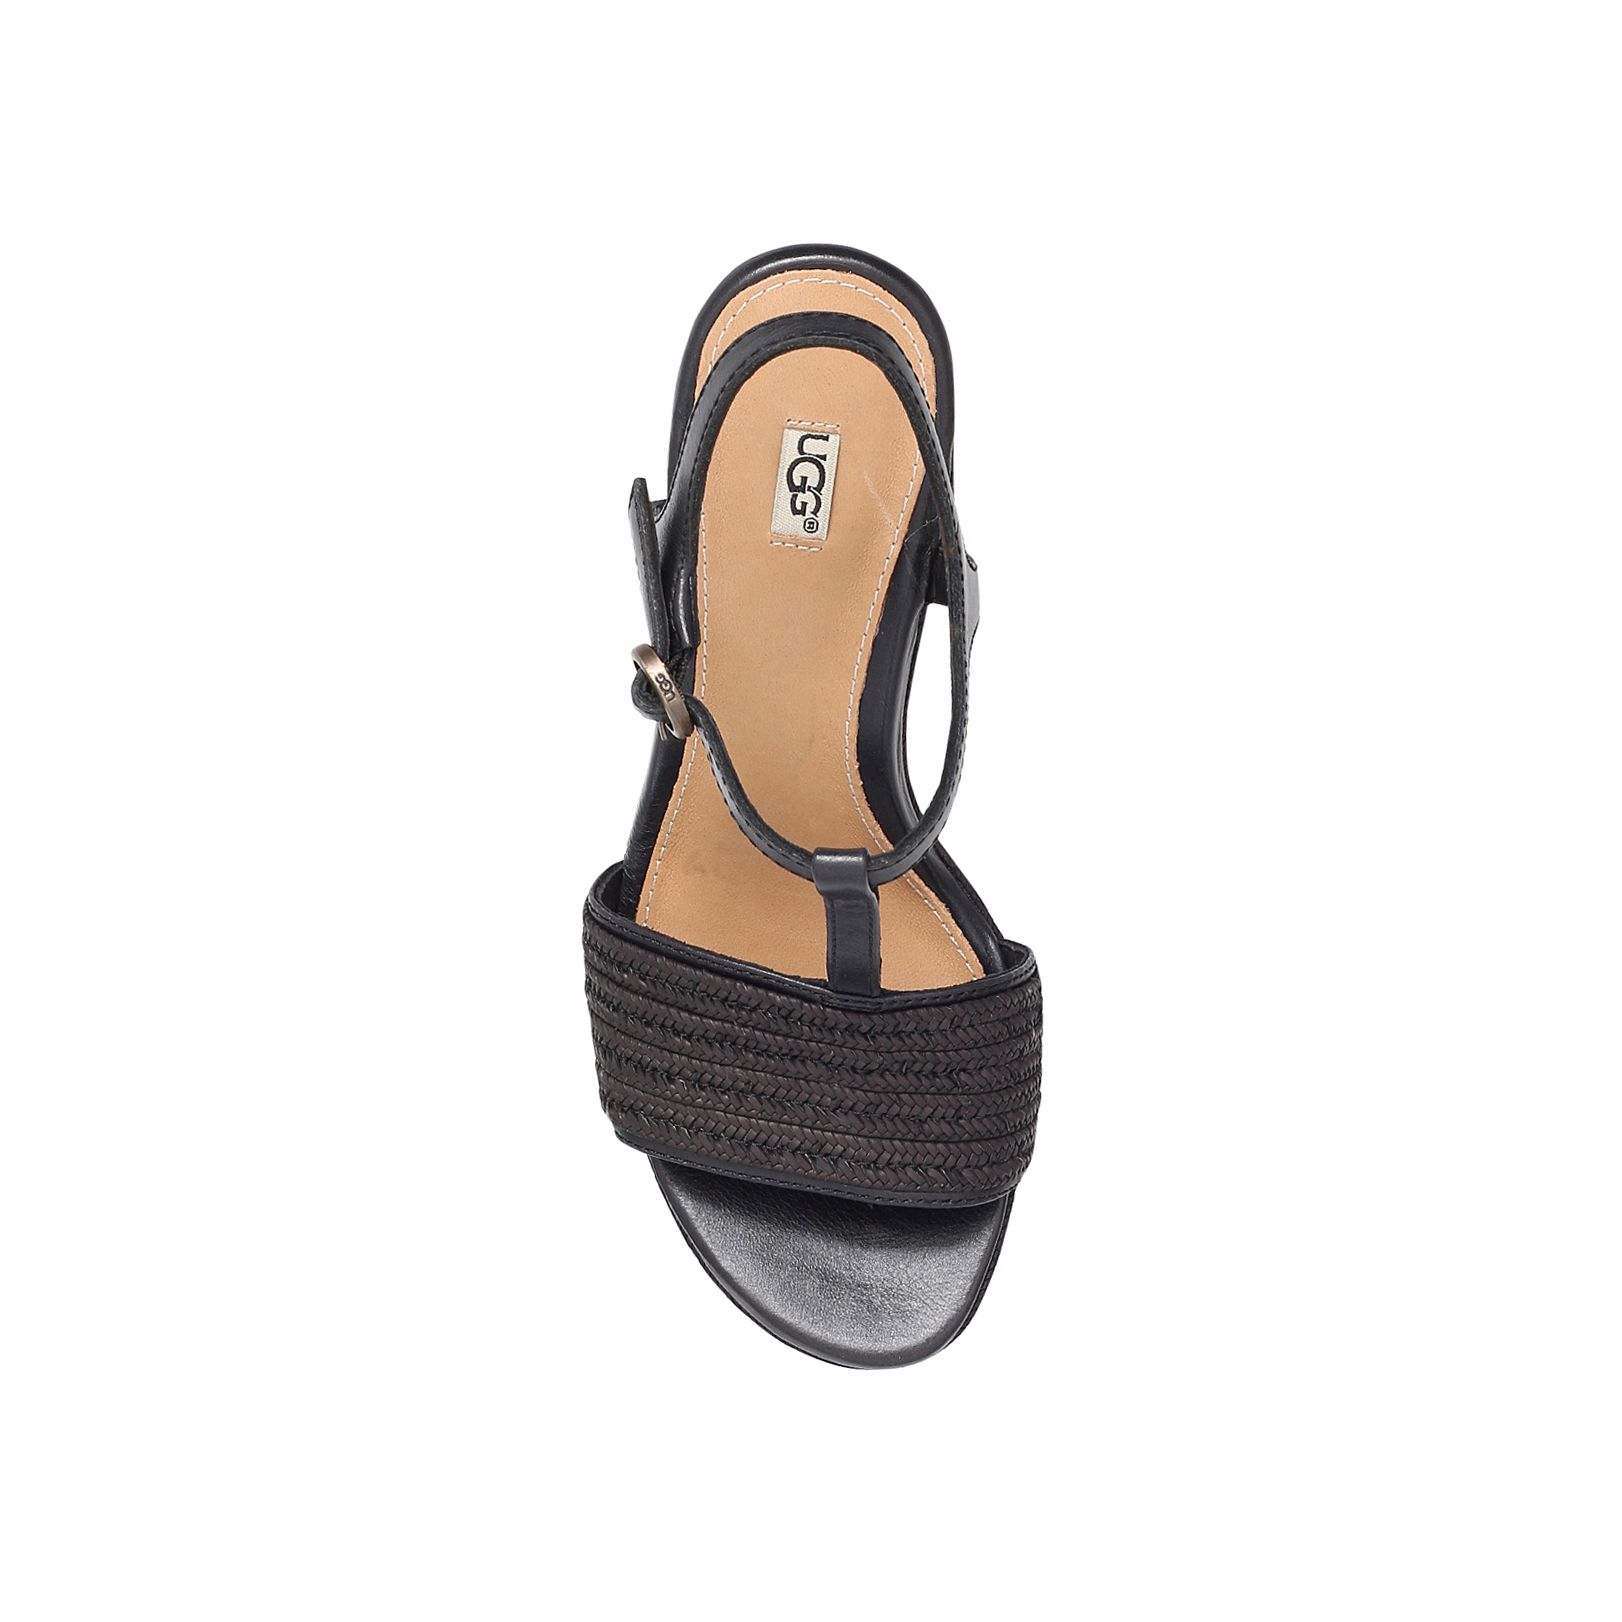 ugg fitchie high heel wedge sandals in black lyst